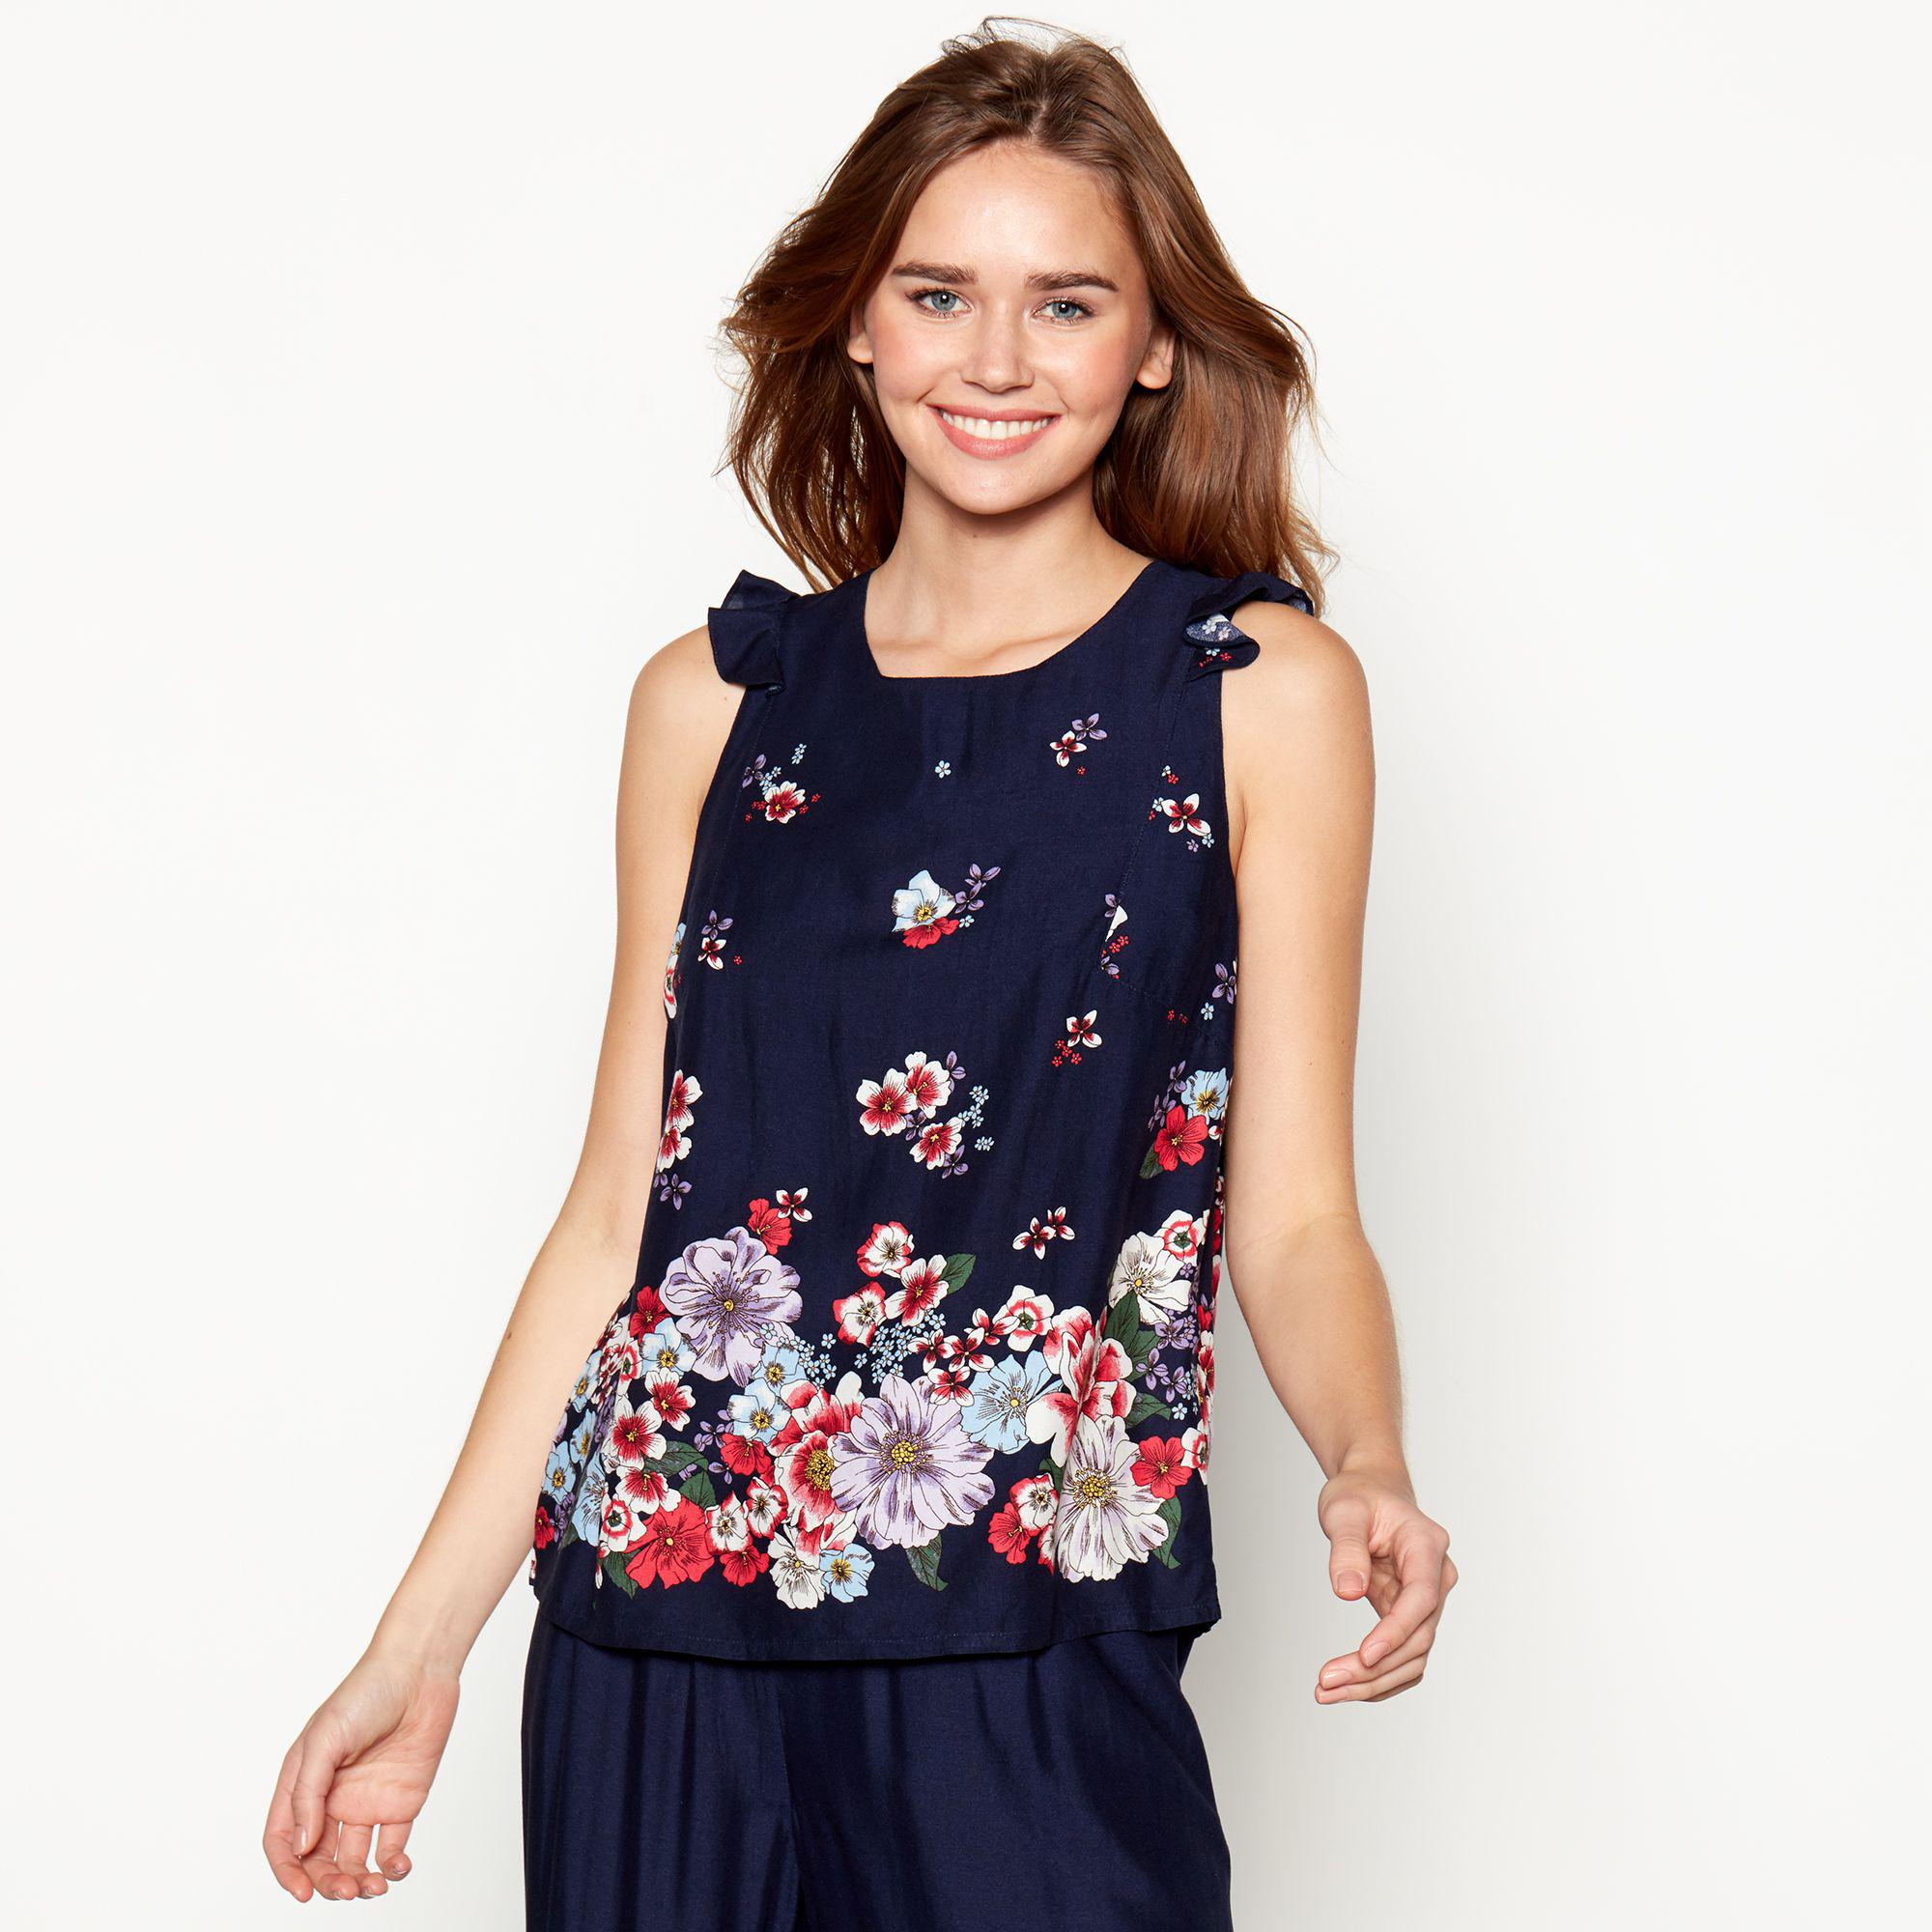 8a9cfe1ad6ea Red Herring Navy 'lady Catherine' Floral Print Top in Blue - Lyst